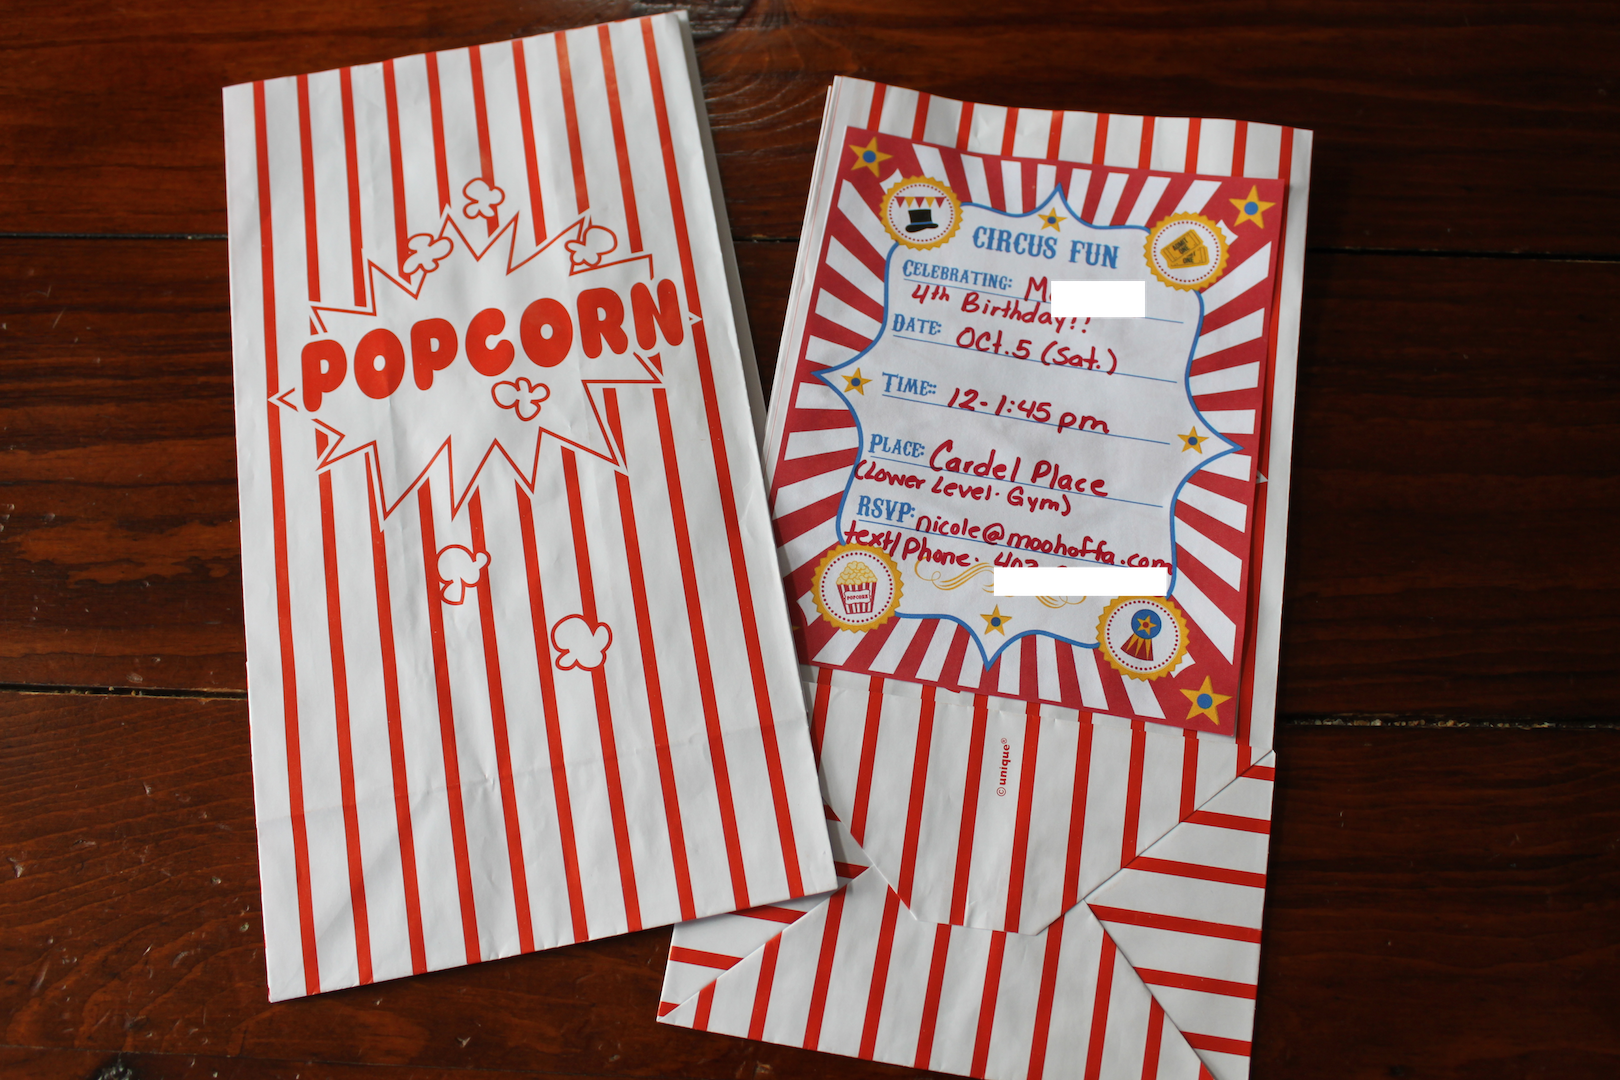 Carnival Theme Invitations were Great Template To Create Fresh Invitation Card